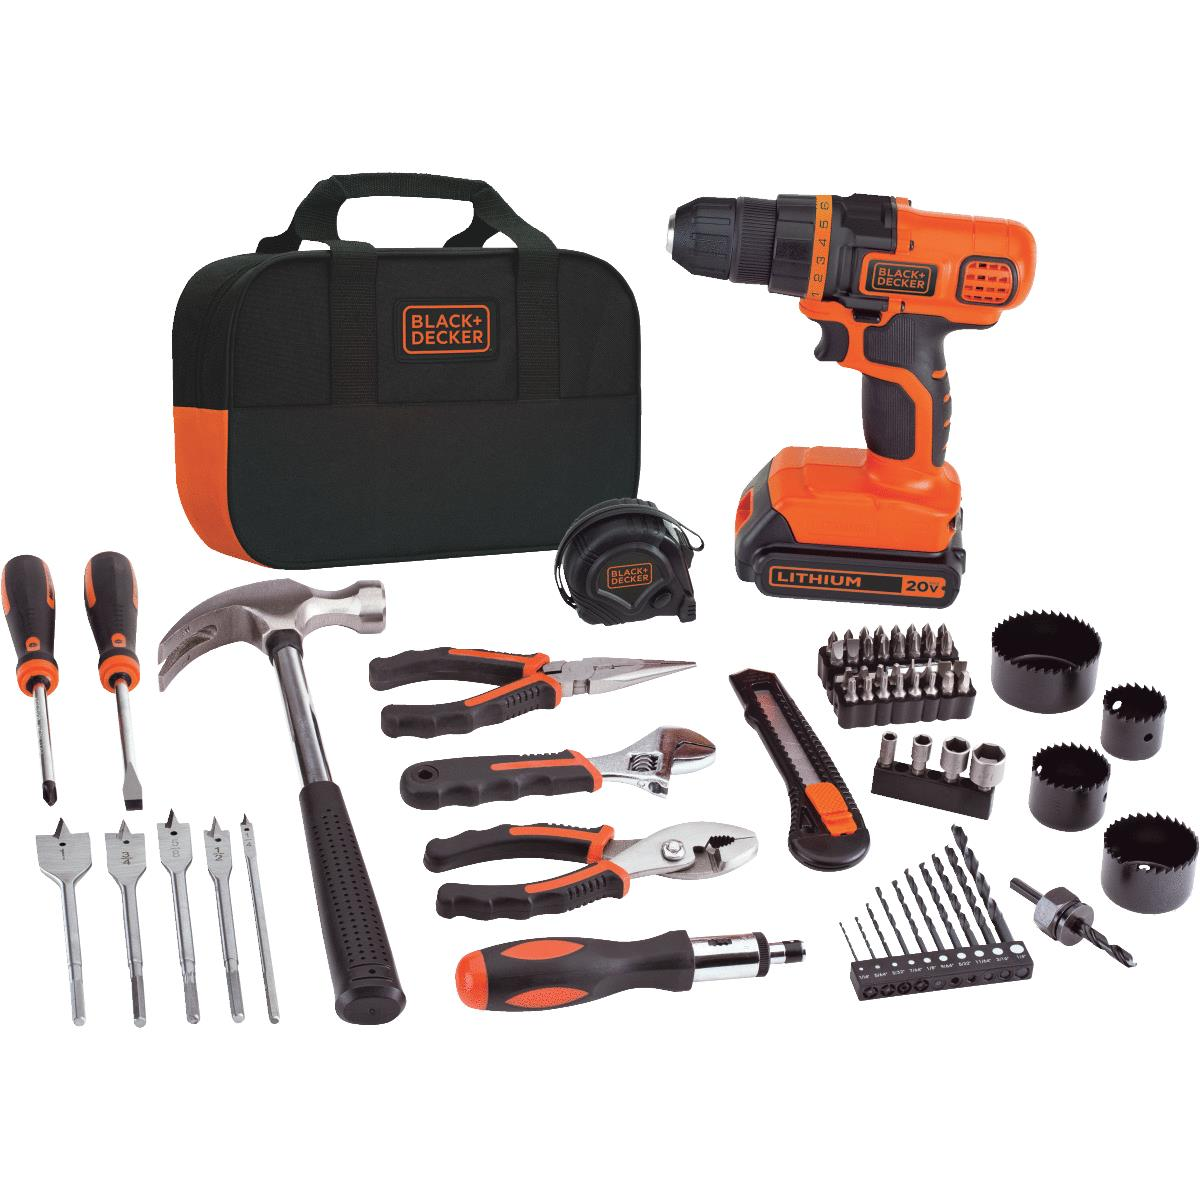 Black & Decker 20V Lithium Ion Project Kit